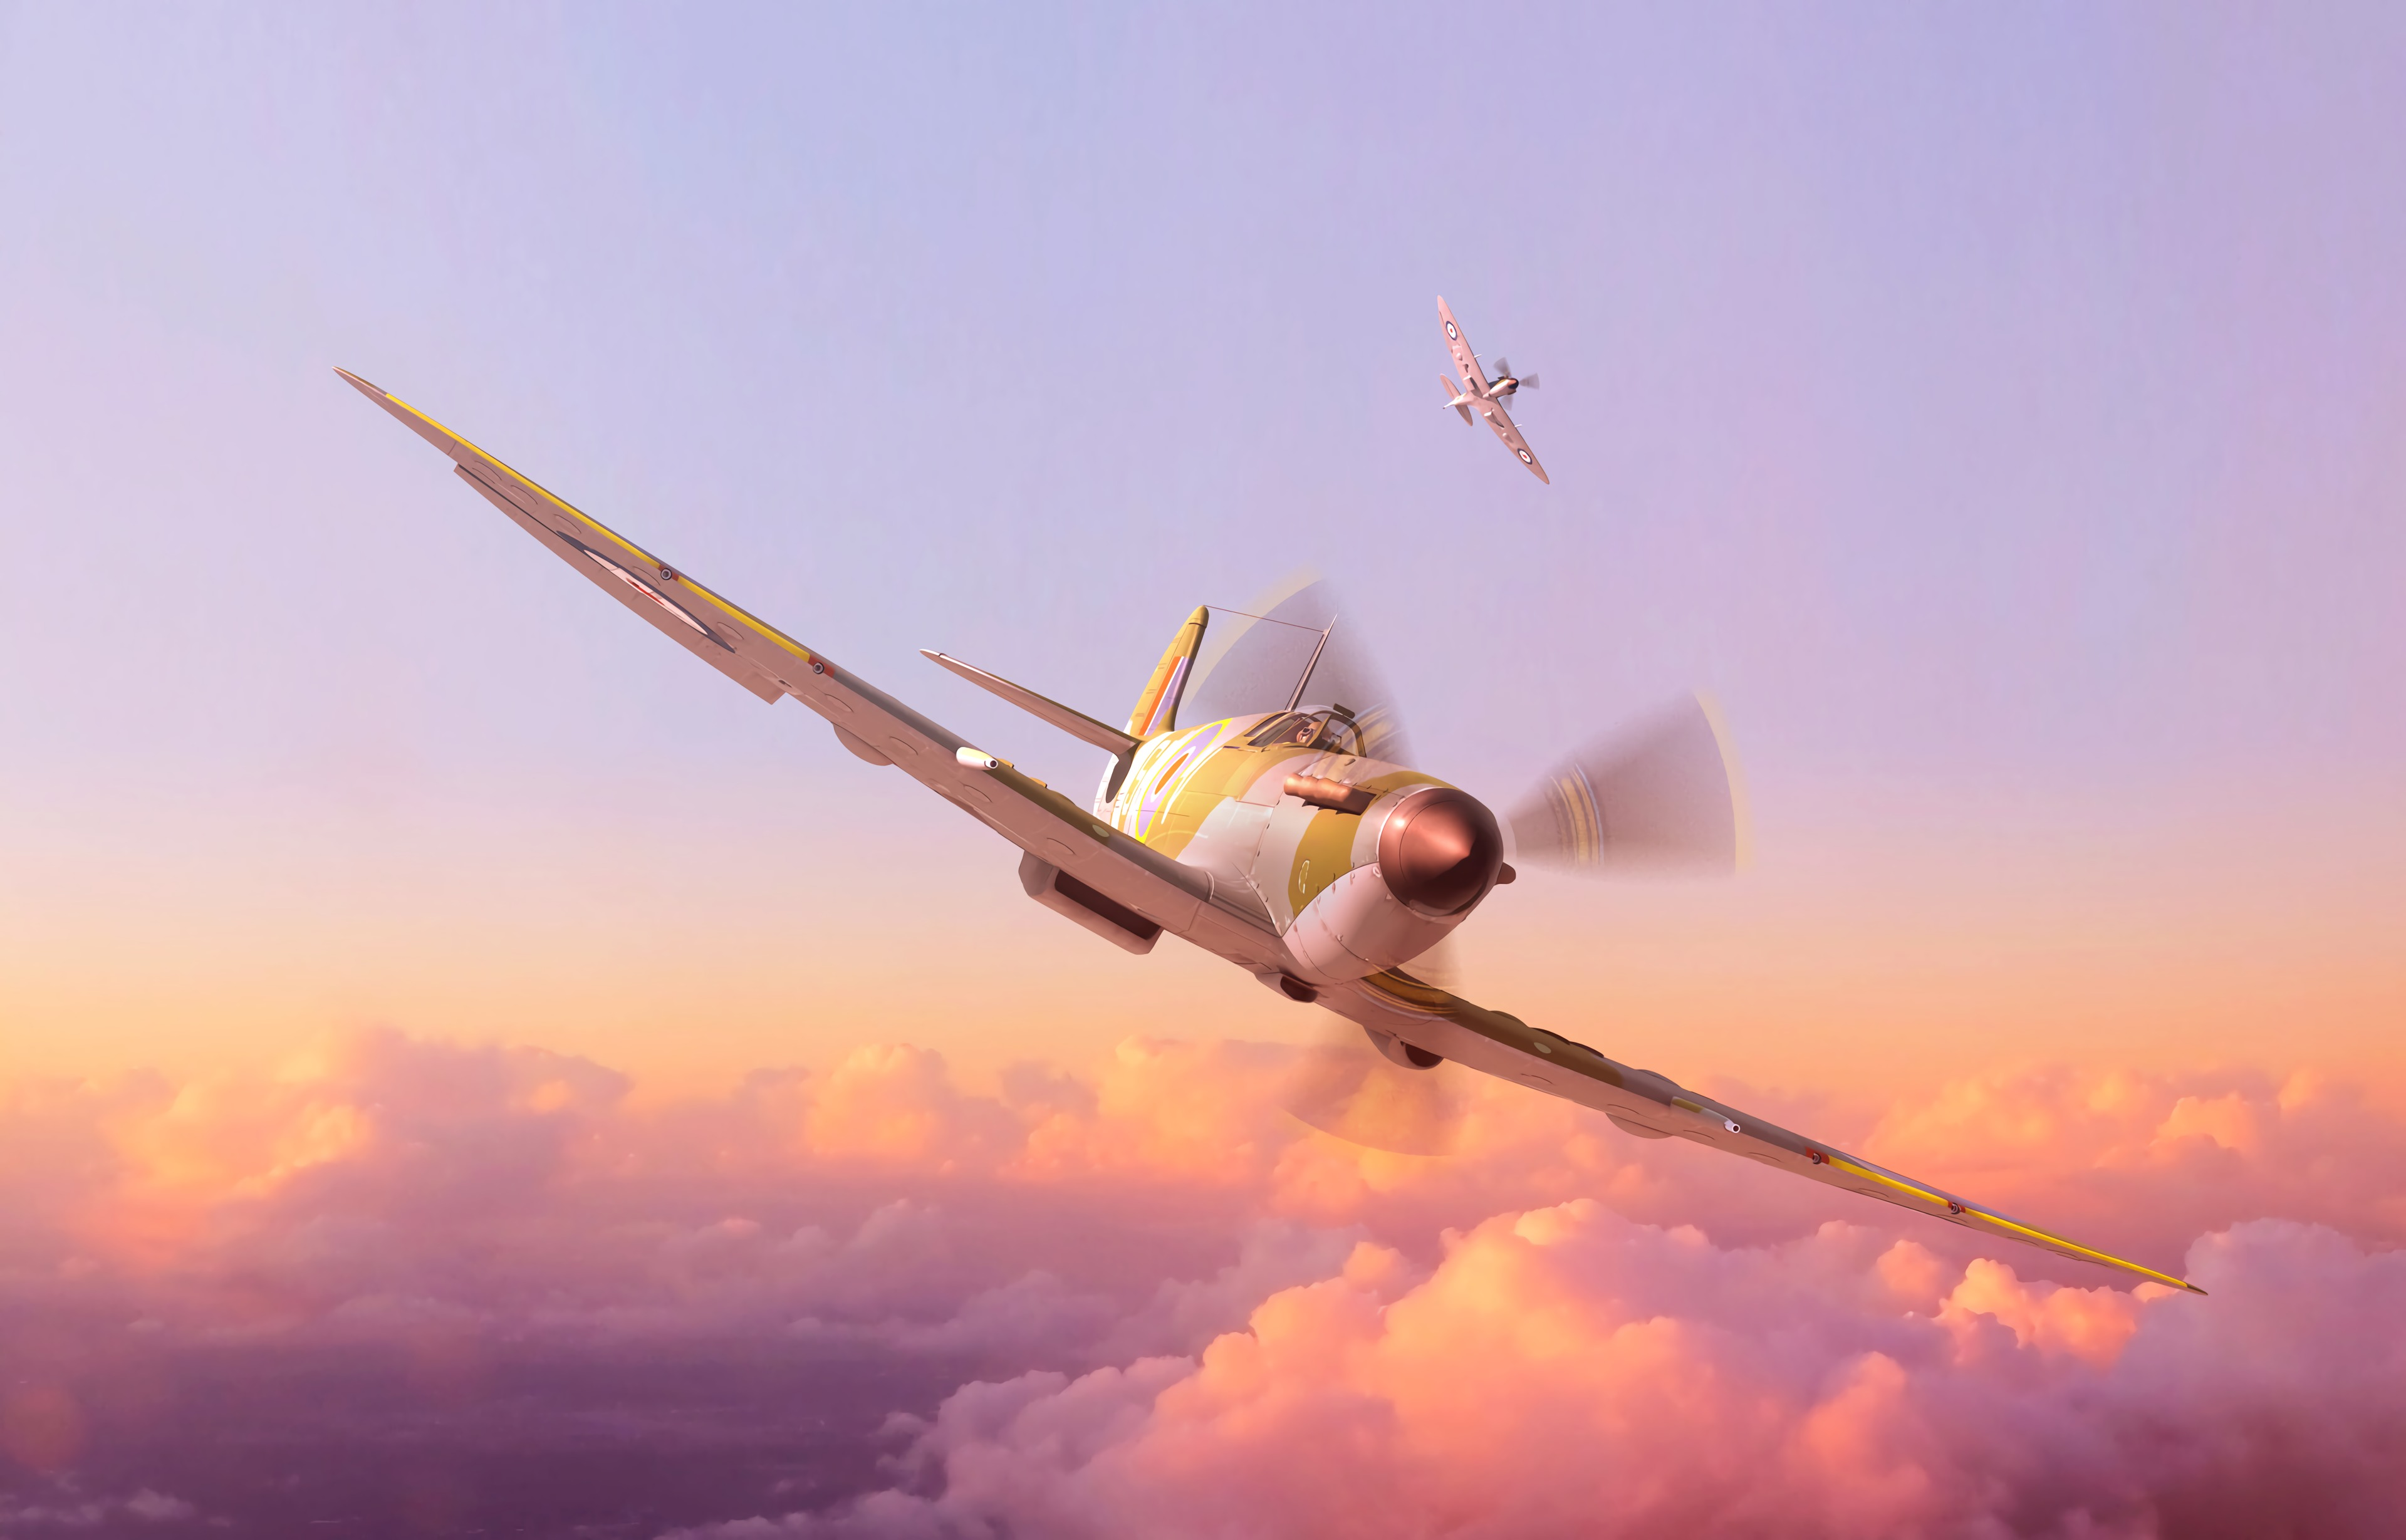 80159 free wallpaper 1080x2400 for phone, download images Sky, Art, Miscellanea, Miscellaneous, Flight, Height, Plane, Airplane, Propeller 1080x2400 for mobile